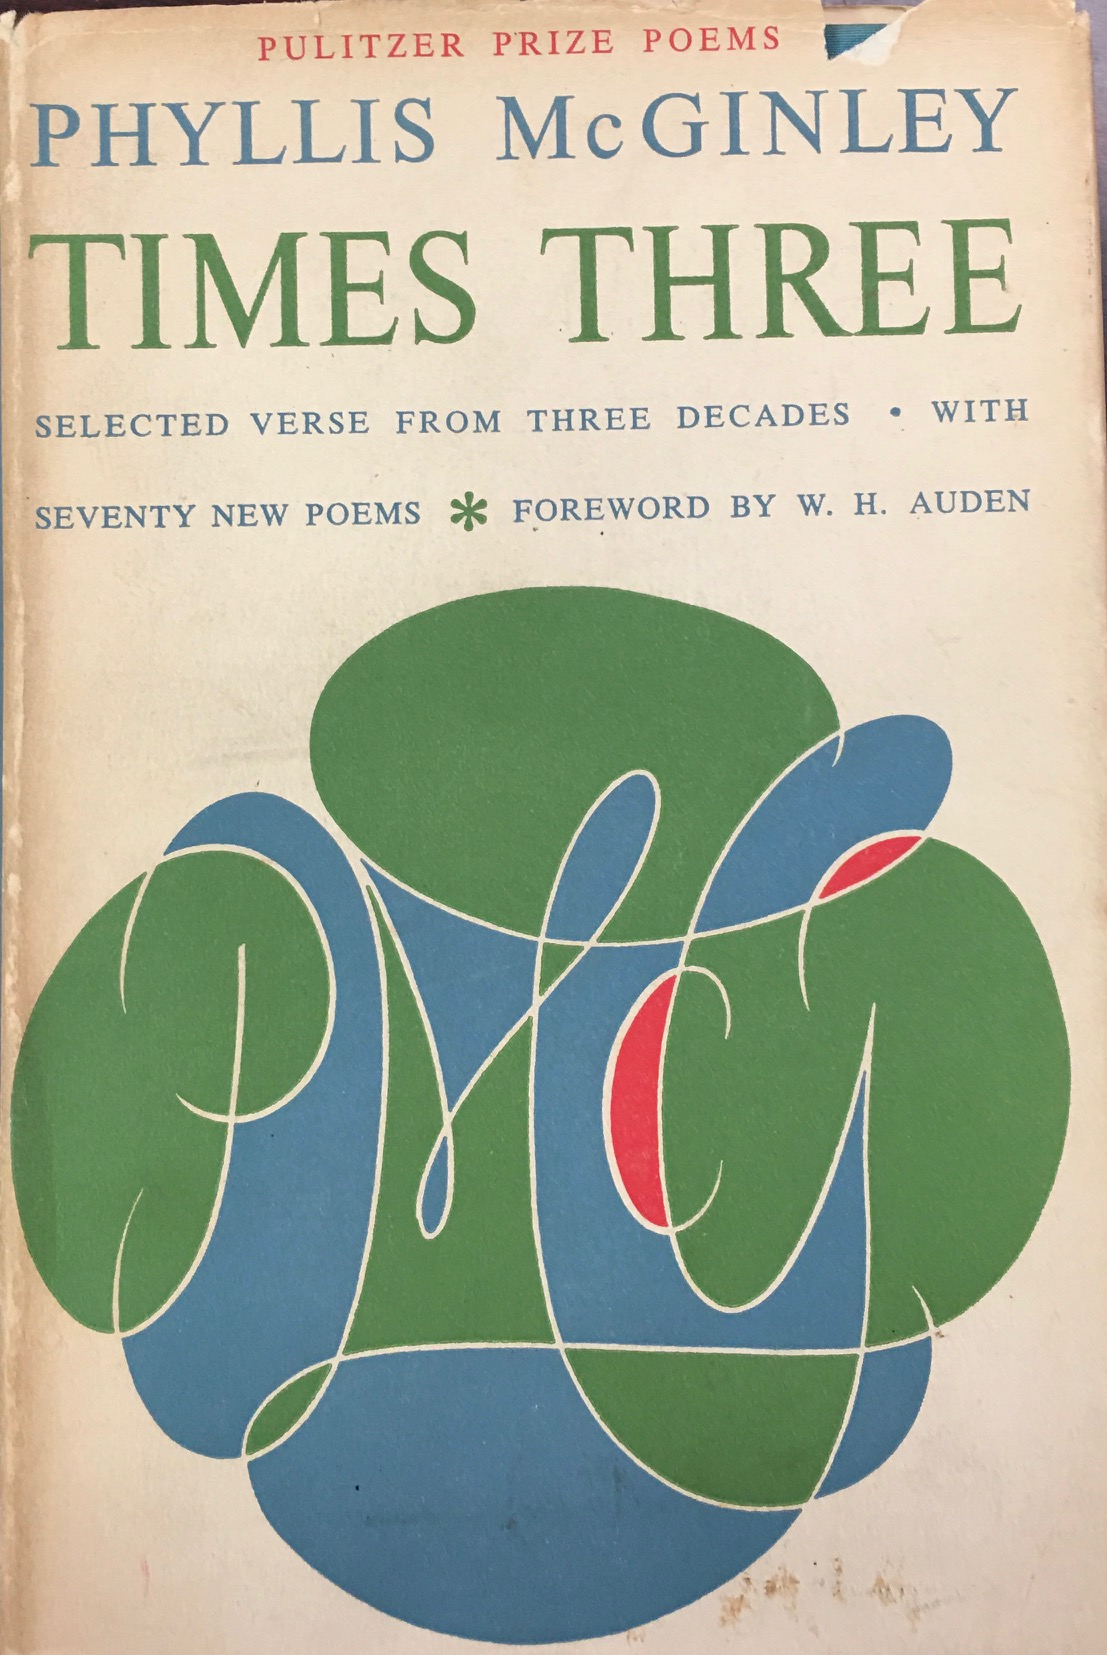 Image for Times Three: Selected verse from three decades with seventy new poems